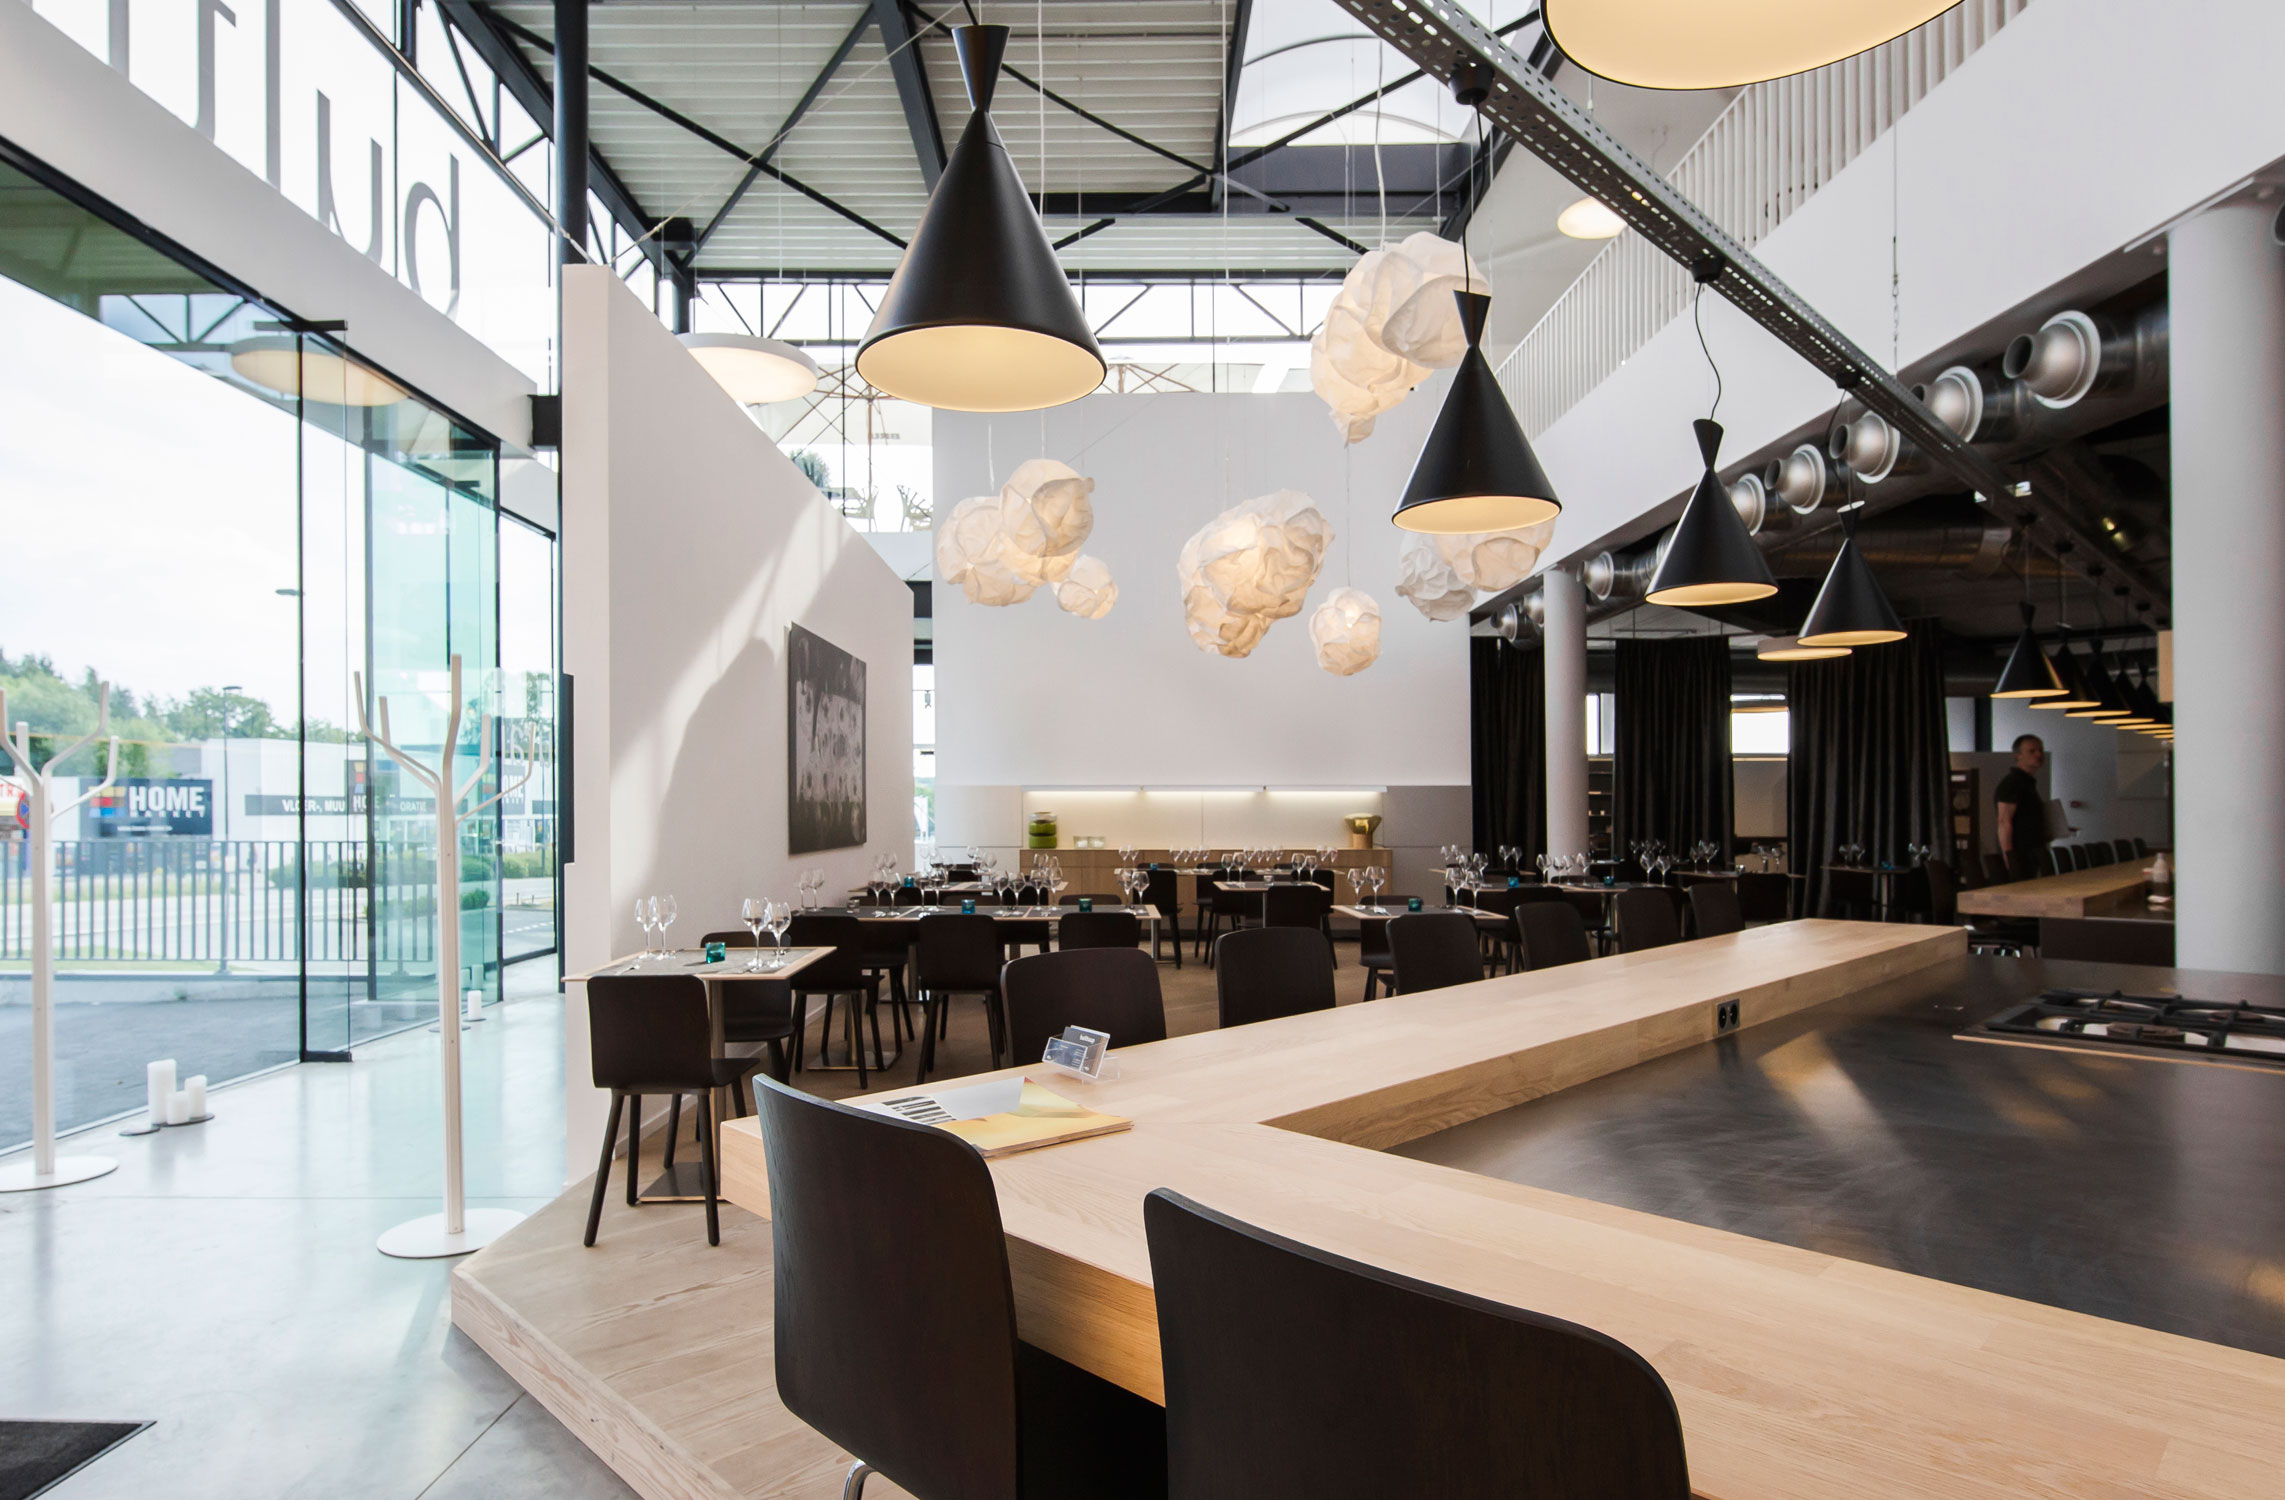 Bulthaup Brussel Be Project Delta Light